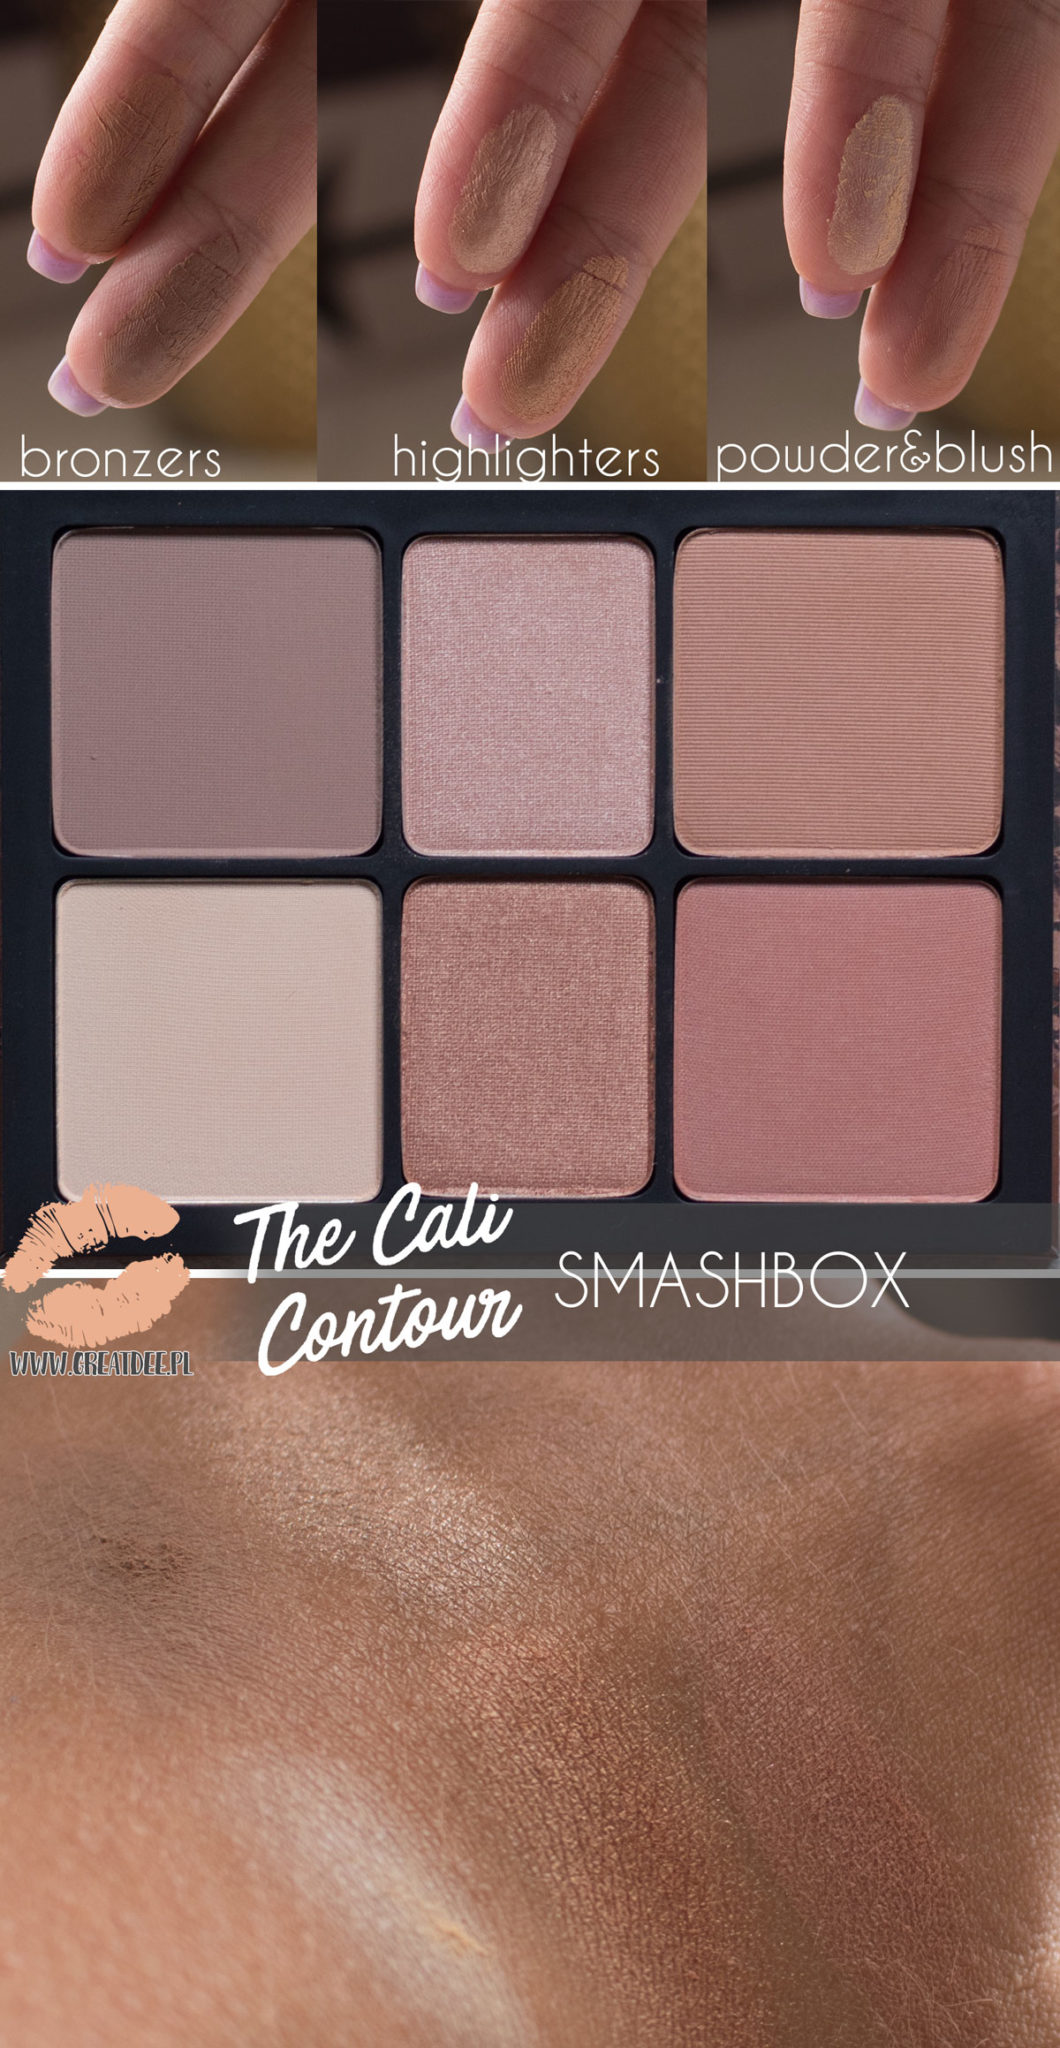 The Cali Contour SMASHBOX swatch